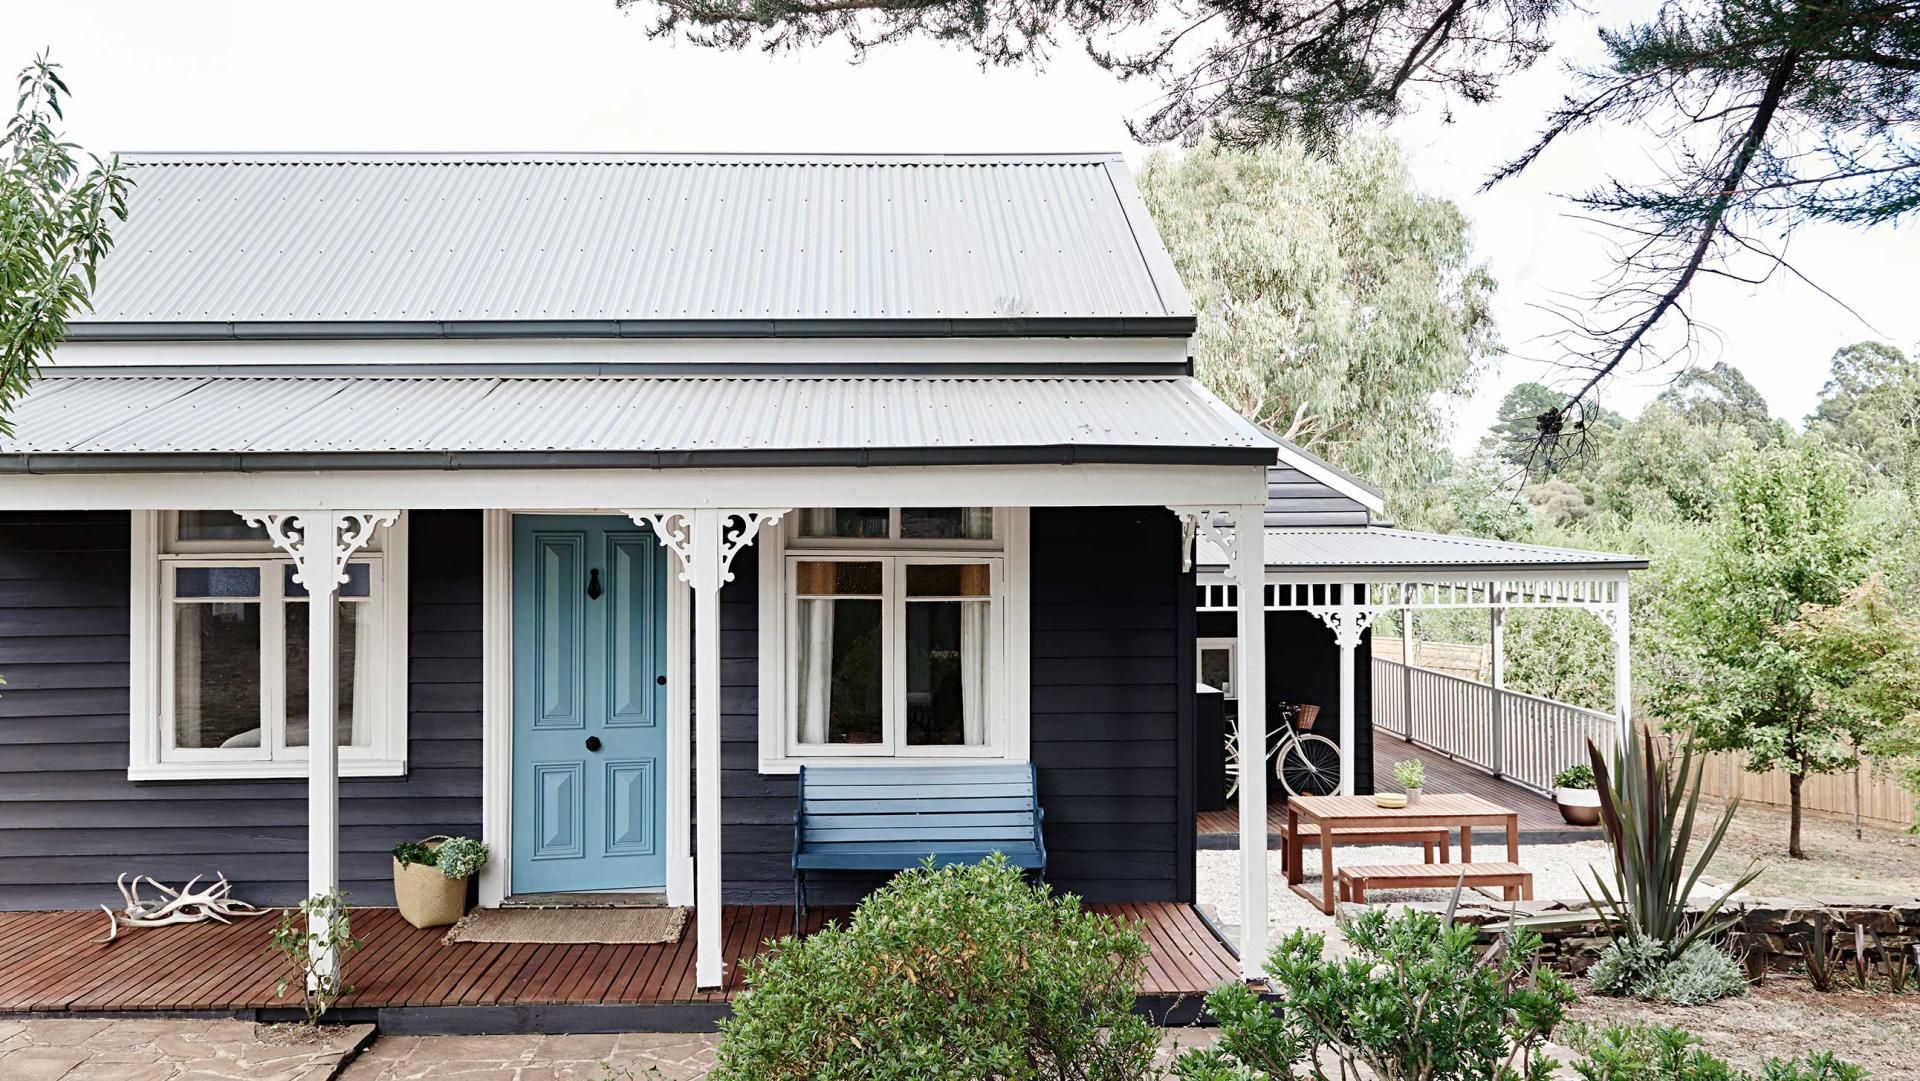 Daylesford cottage victoria exterior colour scheme for Country cottage homes designs australia